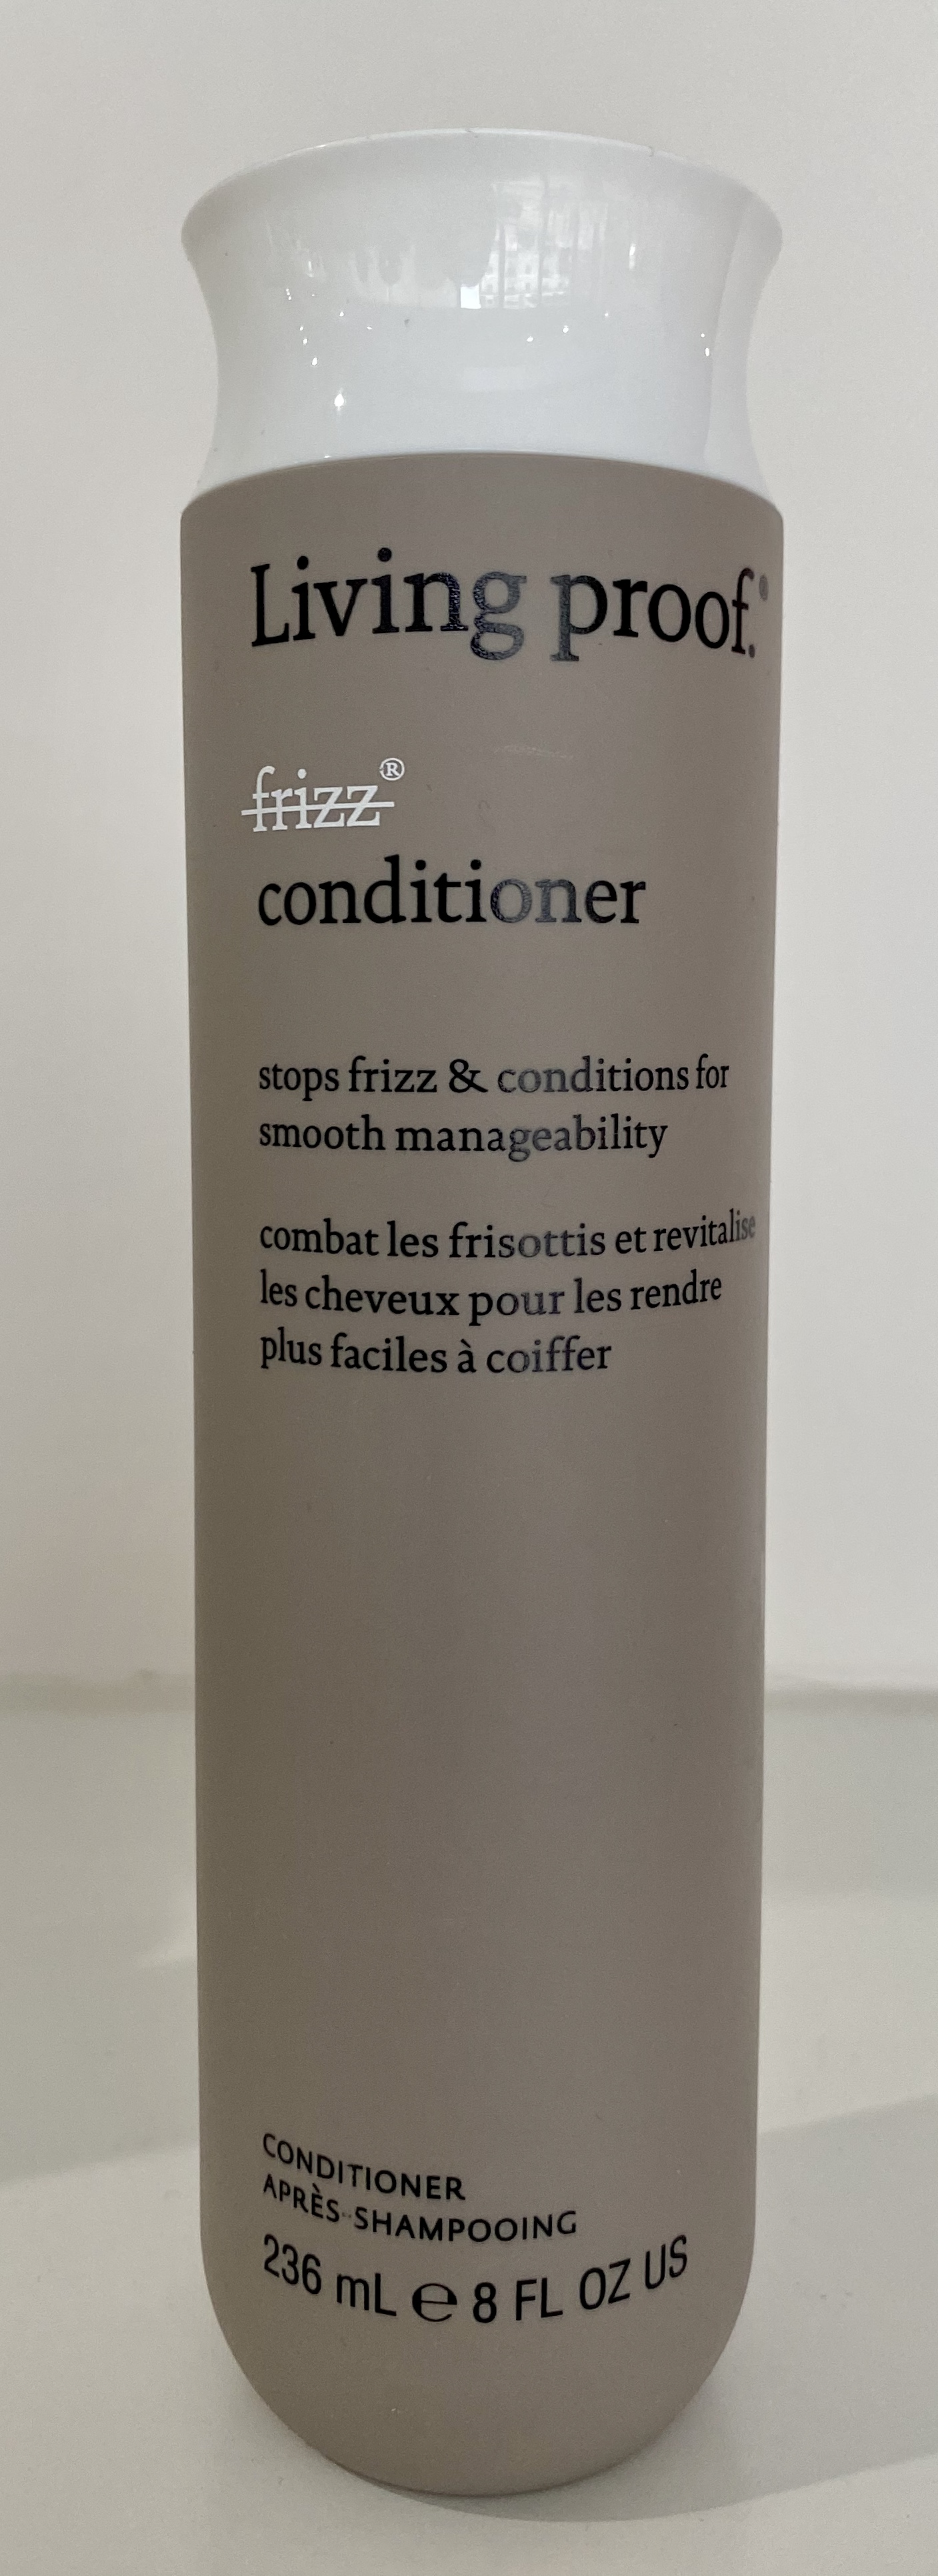 No Frizz Conditioner